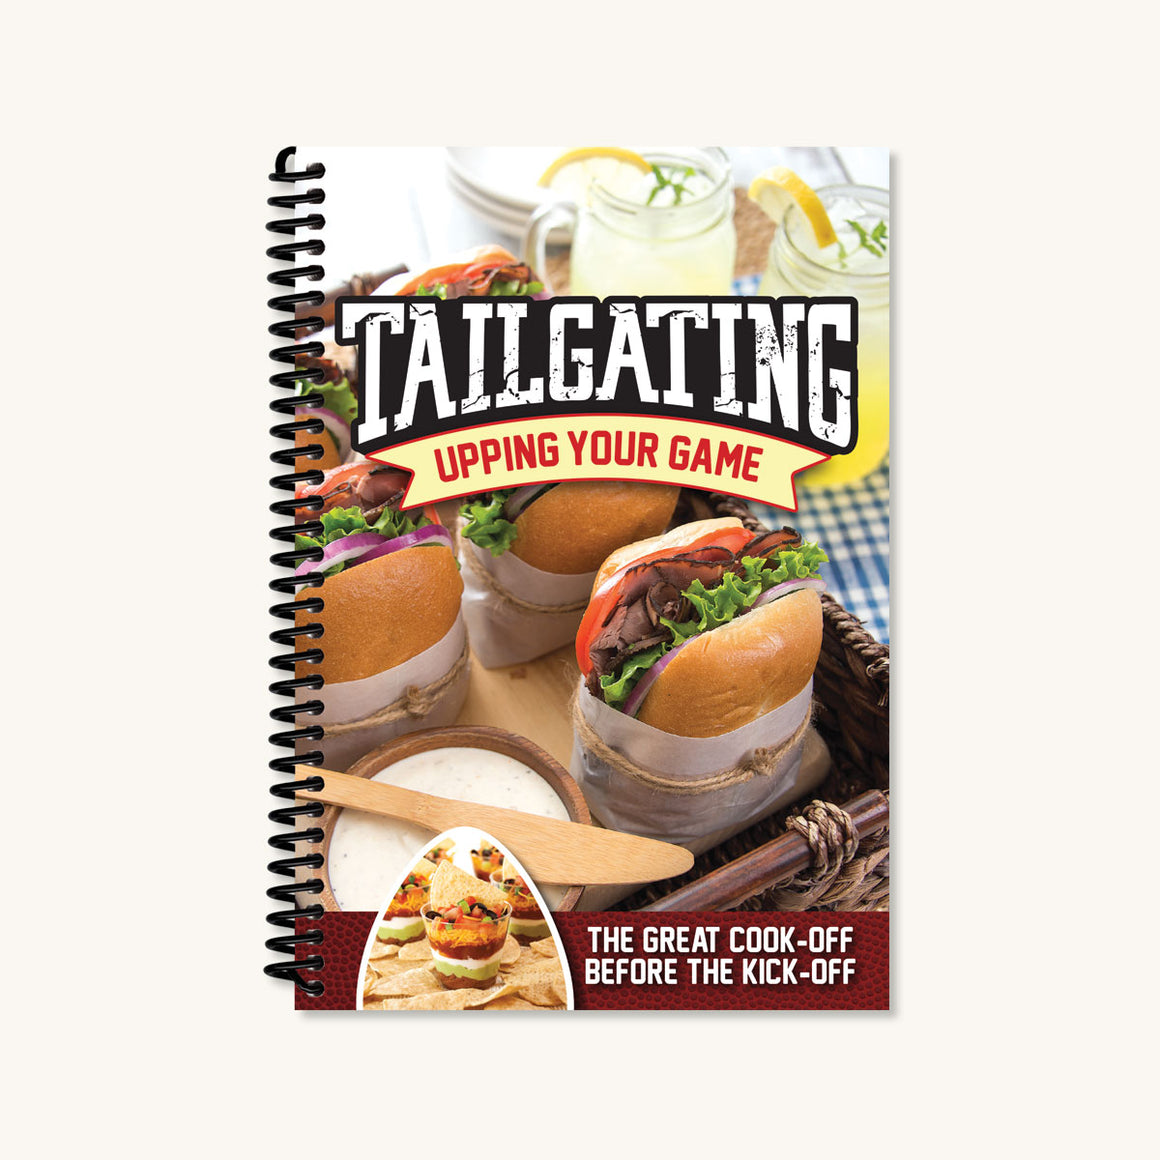 Tailgating: Upping Your Game